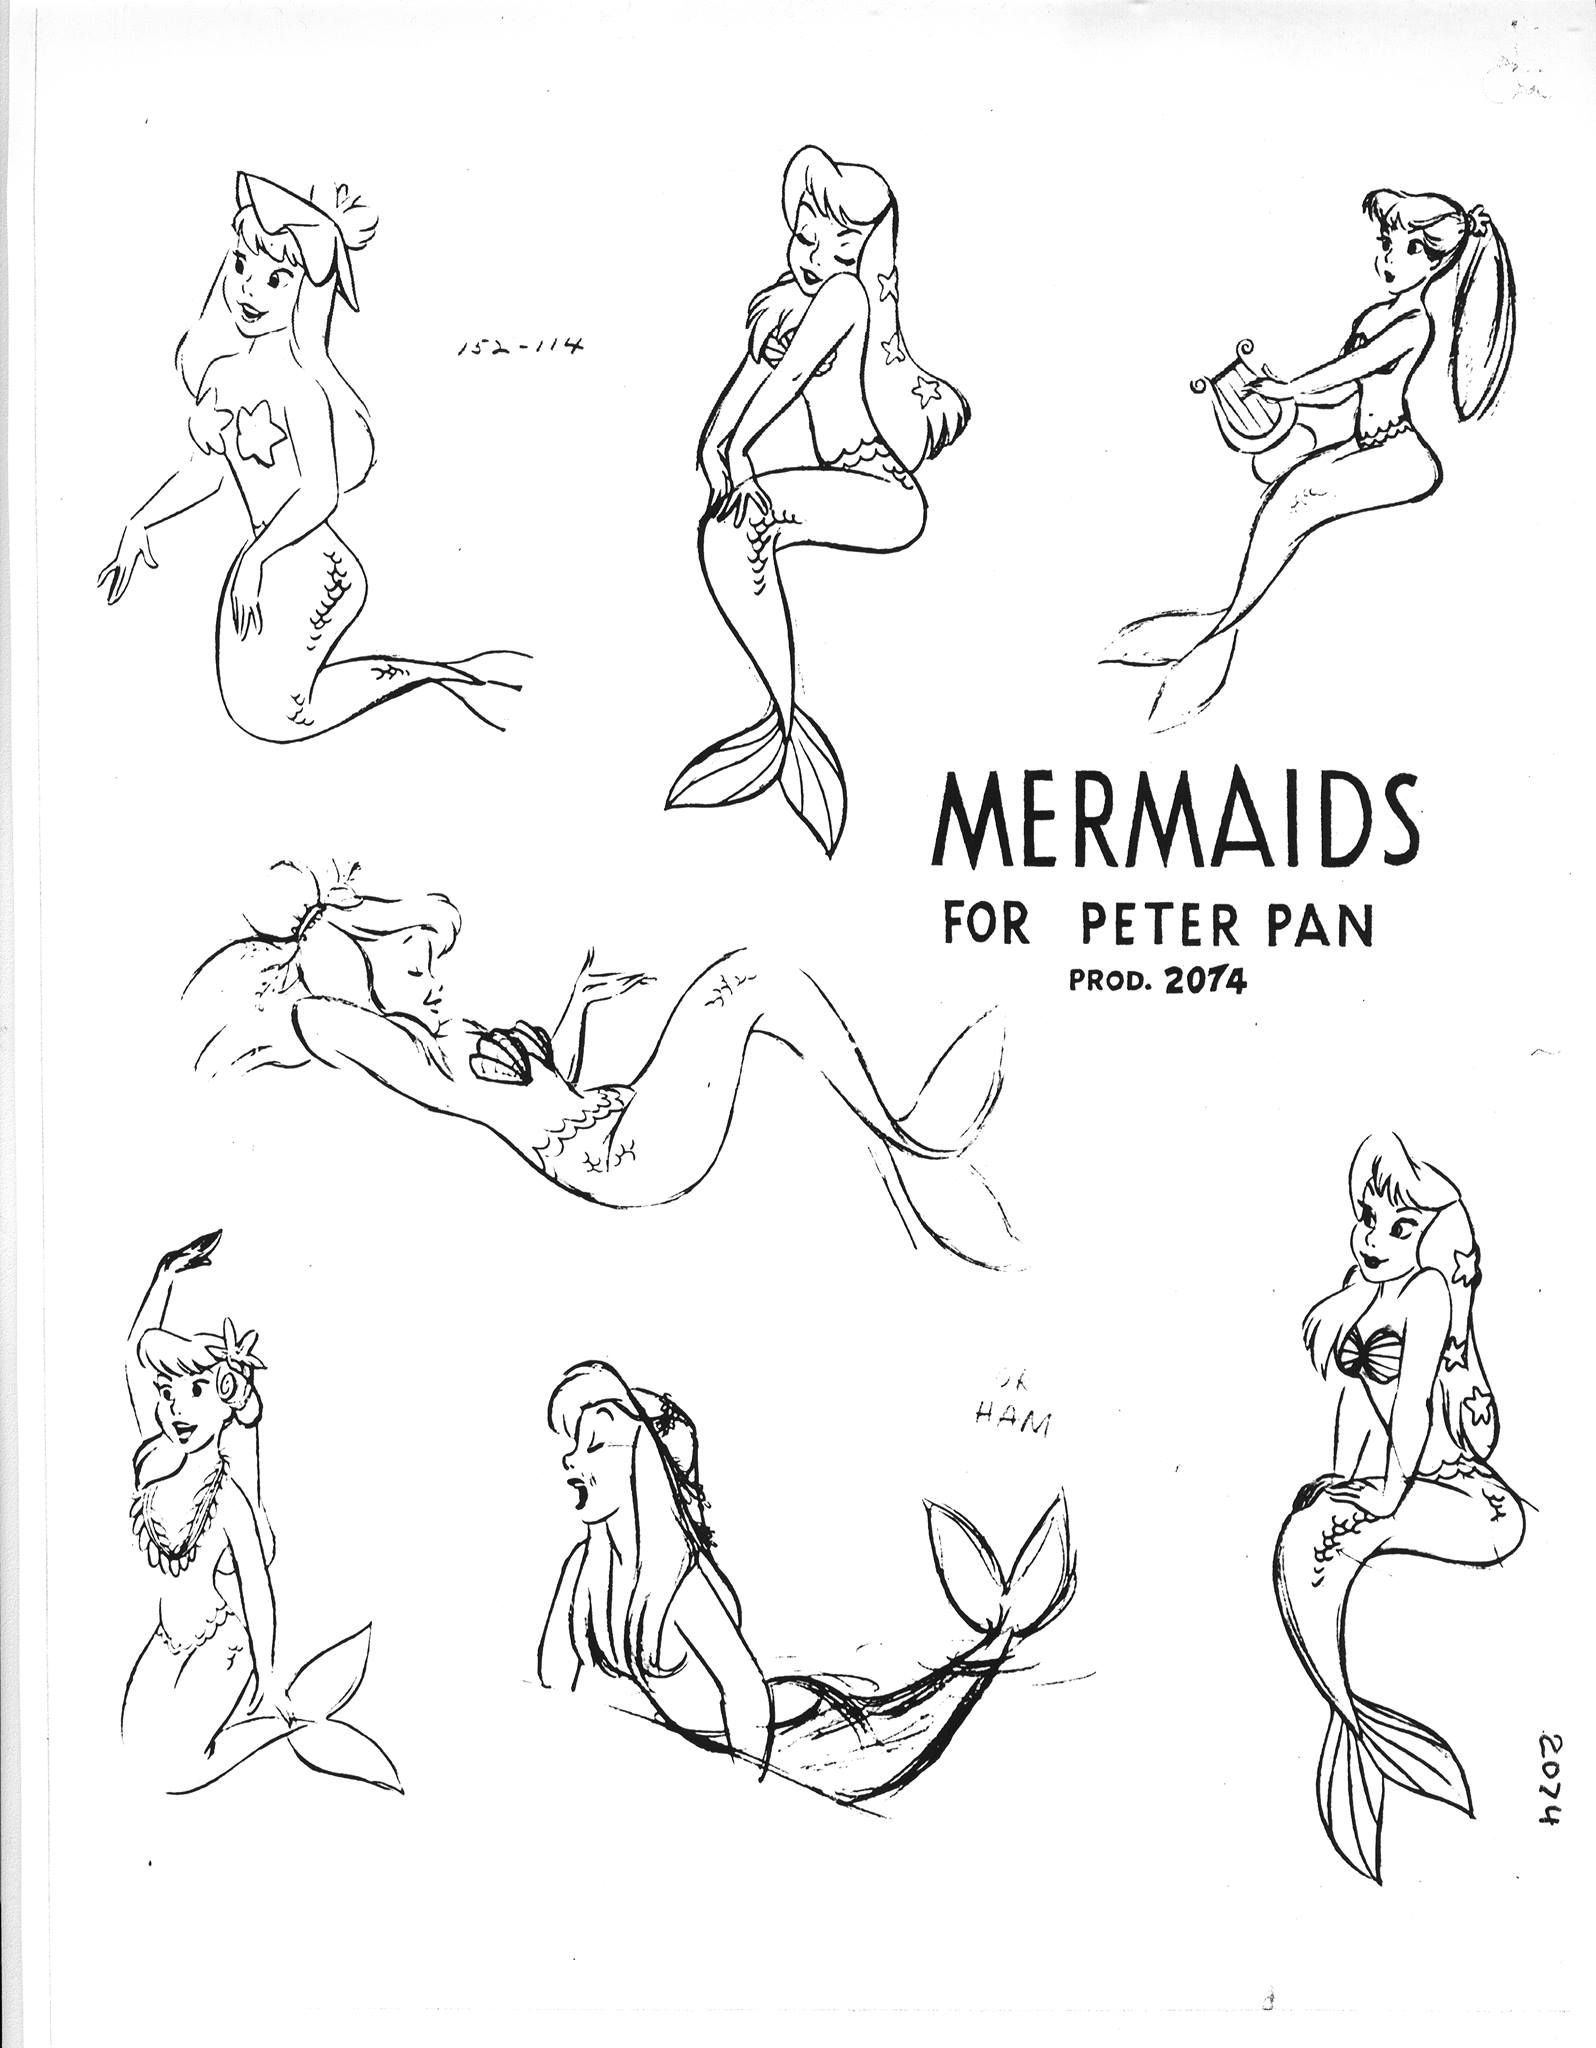 mermaids model sheet from walt disneys peter pan released in